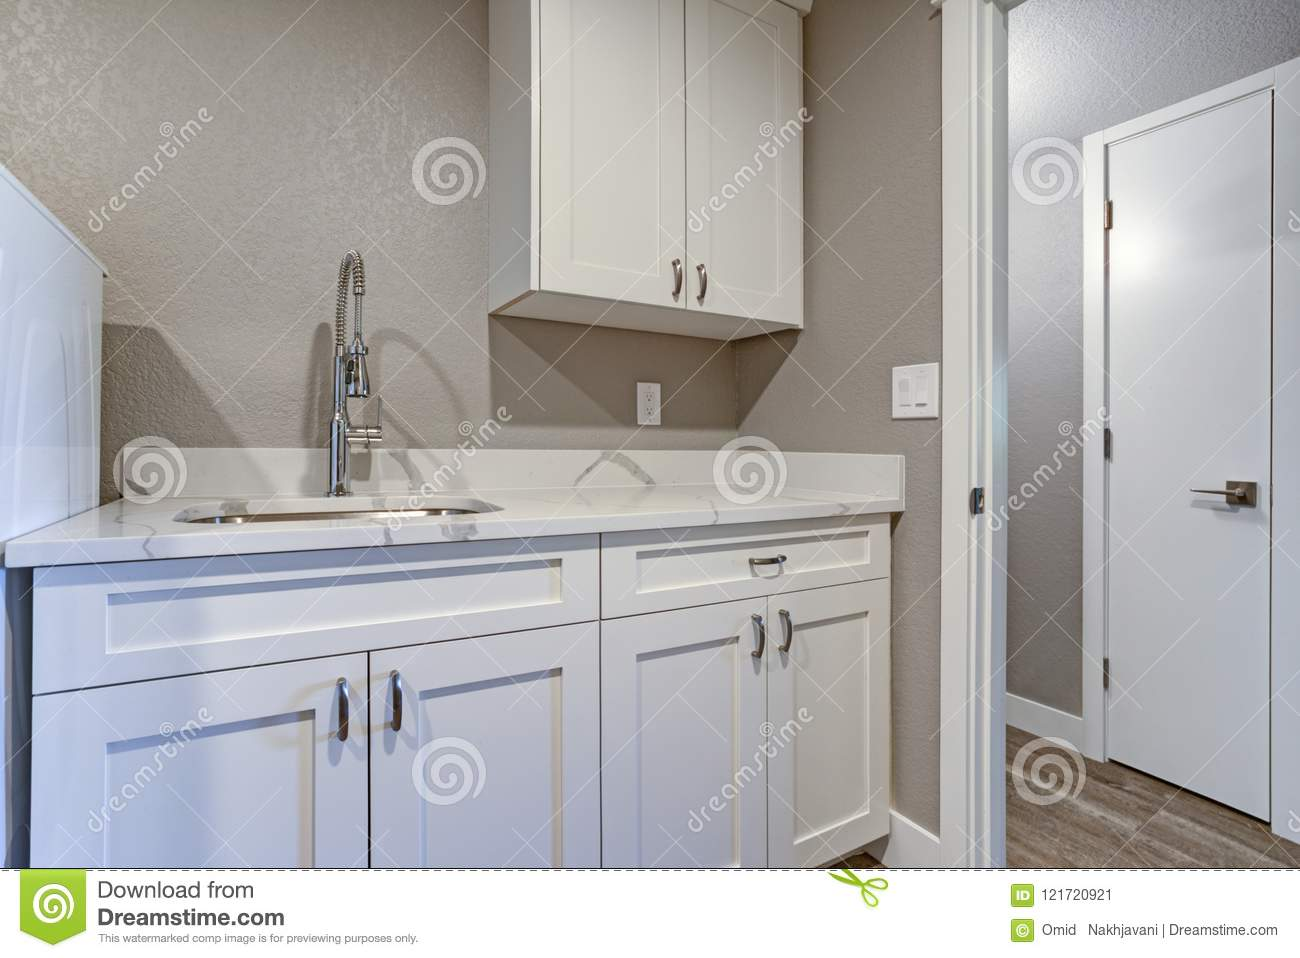 Fine Laundry Room With Taupe Walls And Marble Top Cabinets Stock Interior Design Ideas Gentotryabchikinfo